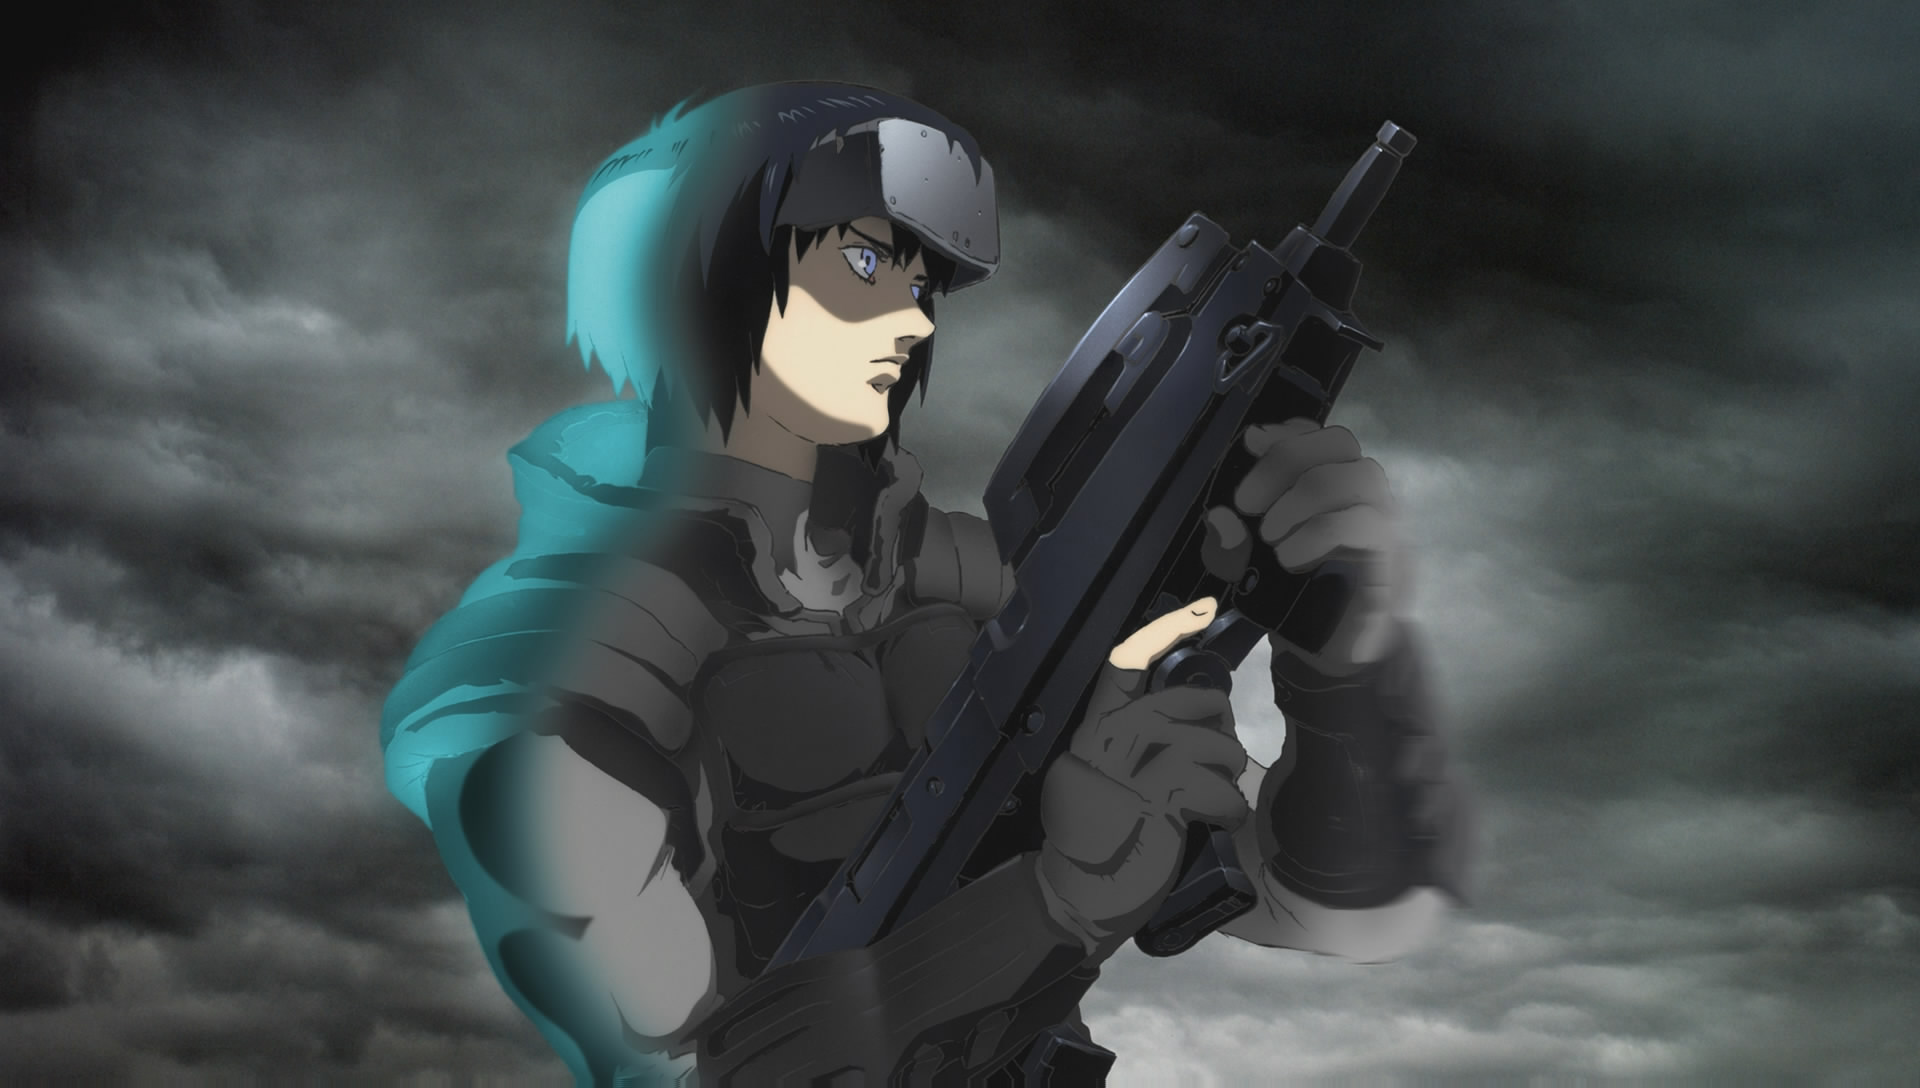 Guns Anime Ghost In The Shell Free Wallpaper Wallpaperjam Com